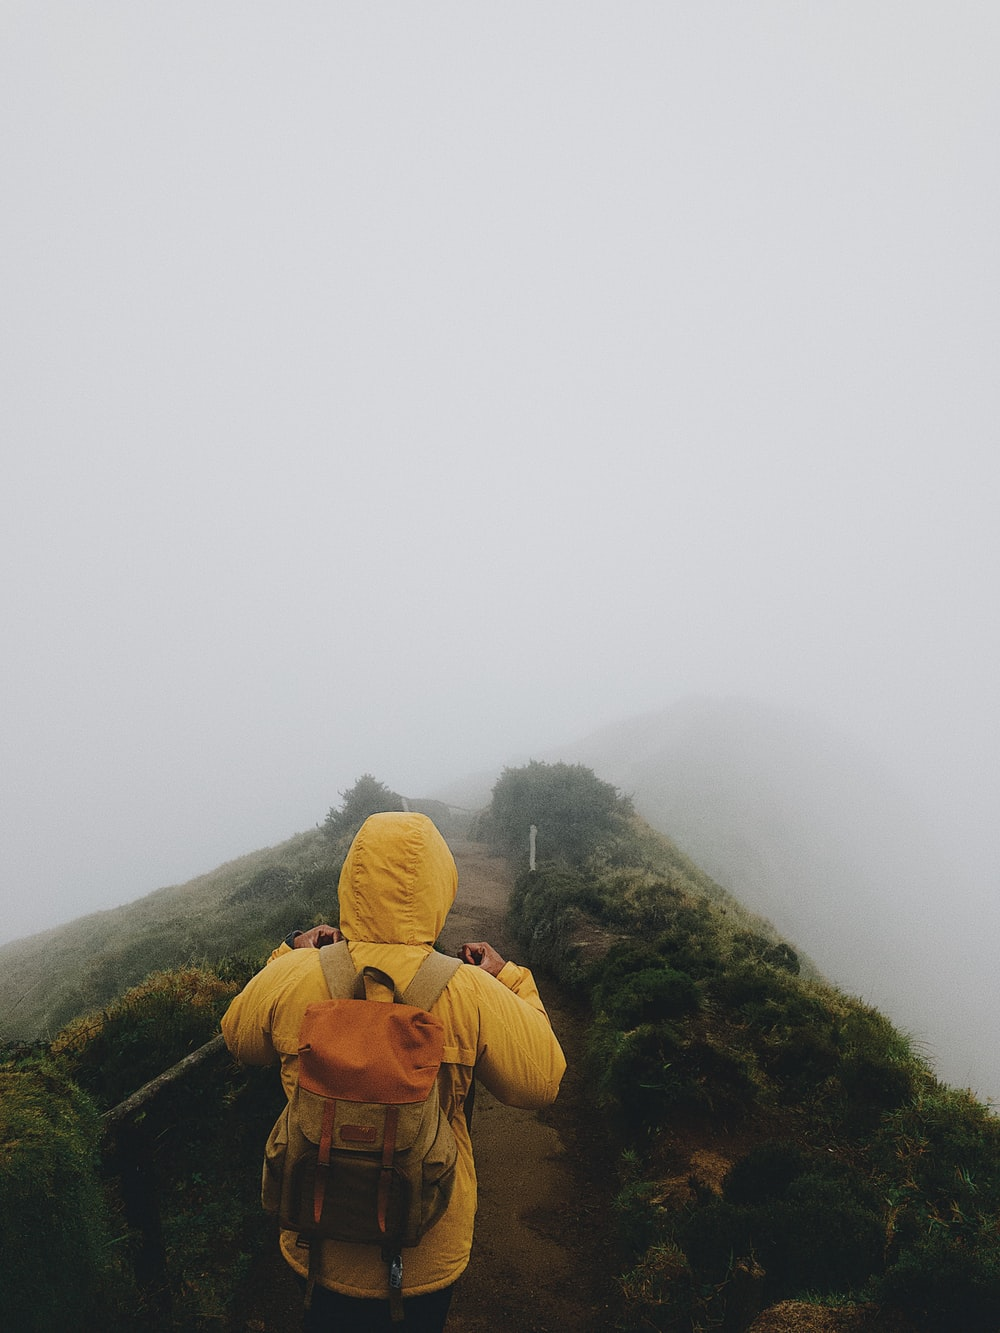 person in yellow coat wearing backpack